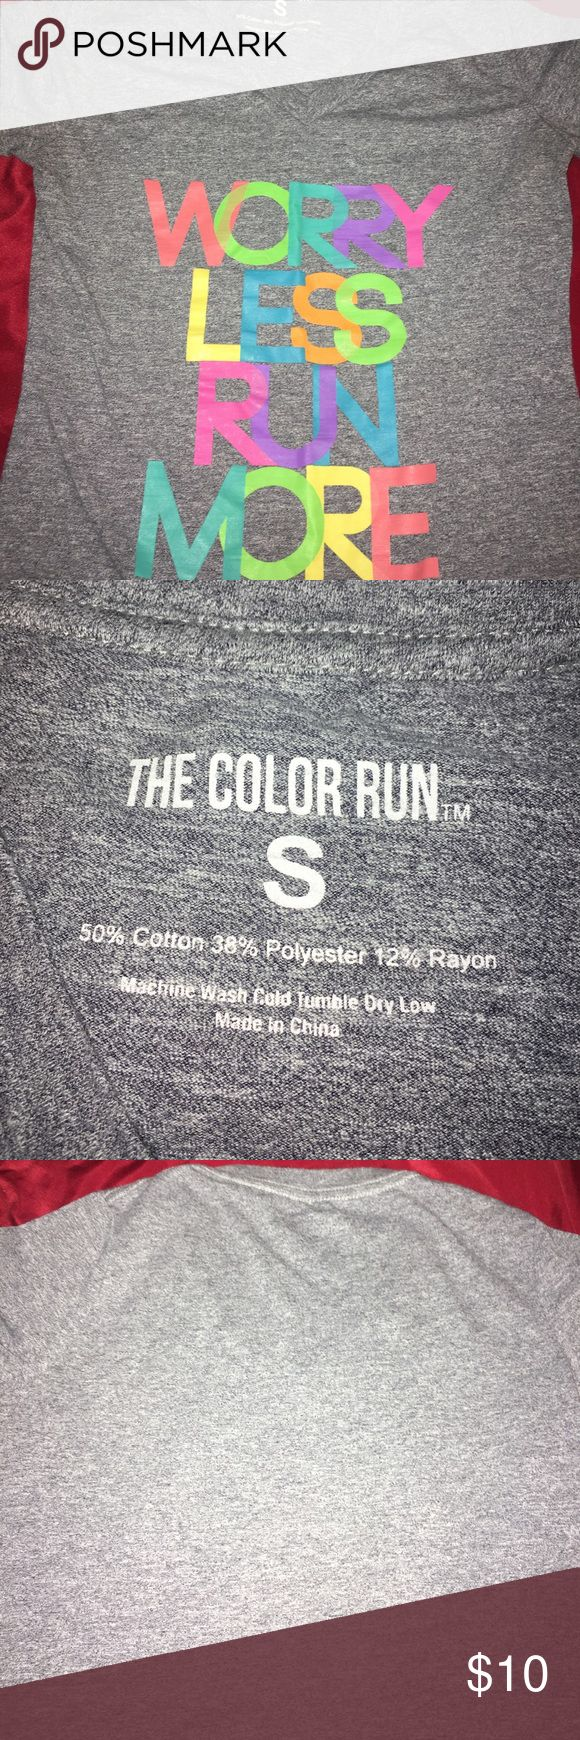 Color Run Shirt Soft cotton tee from a color run. Worn a few times but still good as new. This shirt is also a more slimming kind of women's shirt not like a traditional Tshirt. Tops Tees - Short Sleeve